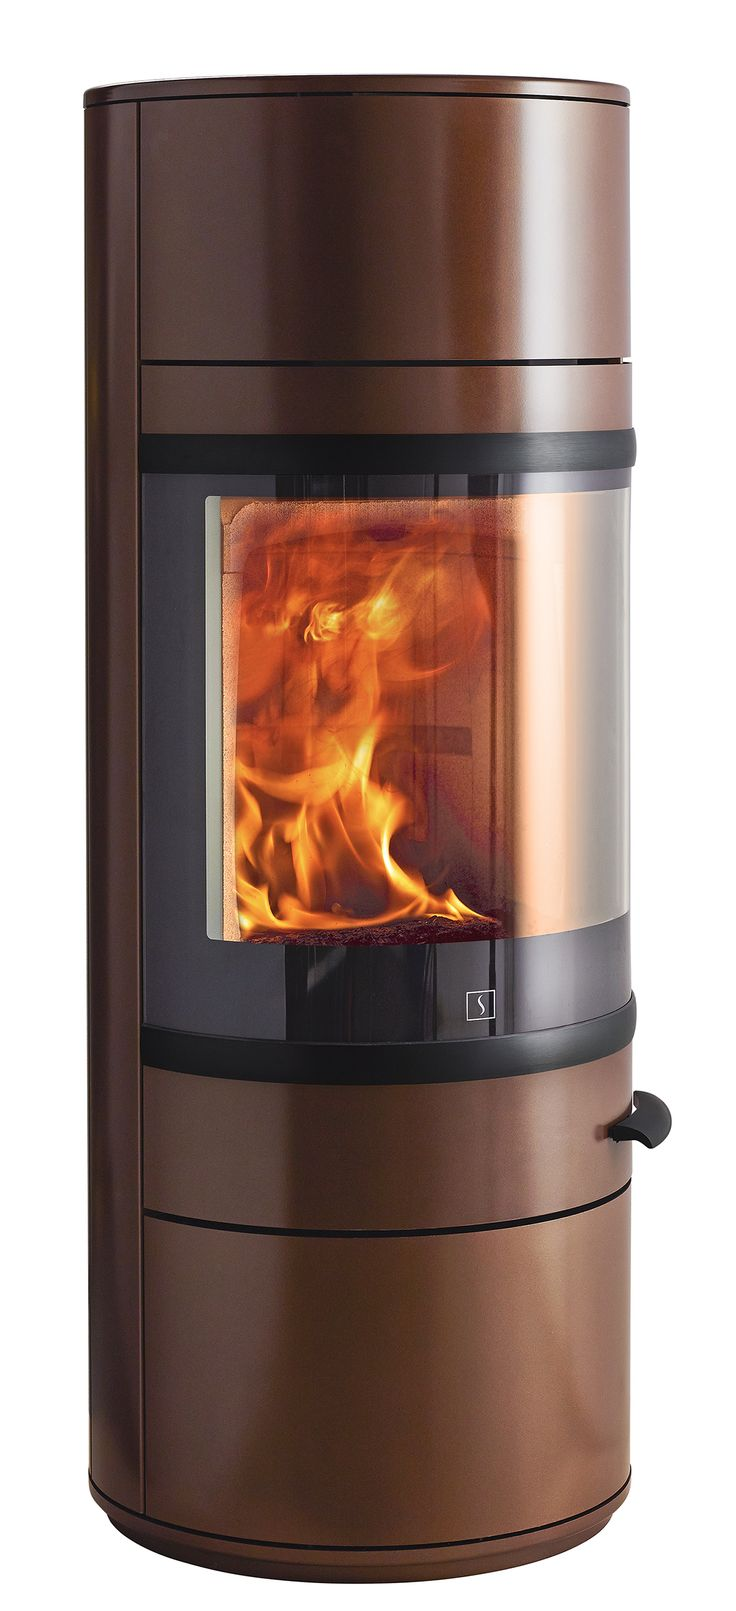 An unusual colour for this great stove. Check out more about it on http://c6748260.myzen.co.uk/stoves/contemporary-stoves-2/scan/scan-83